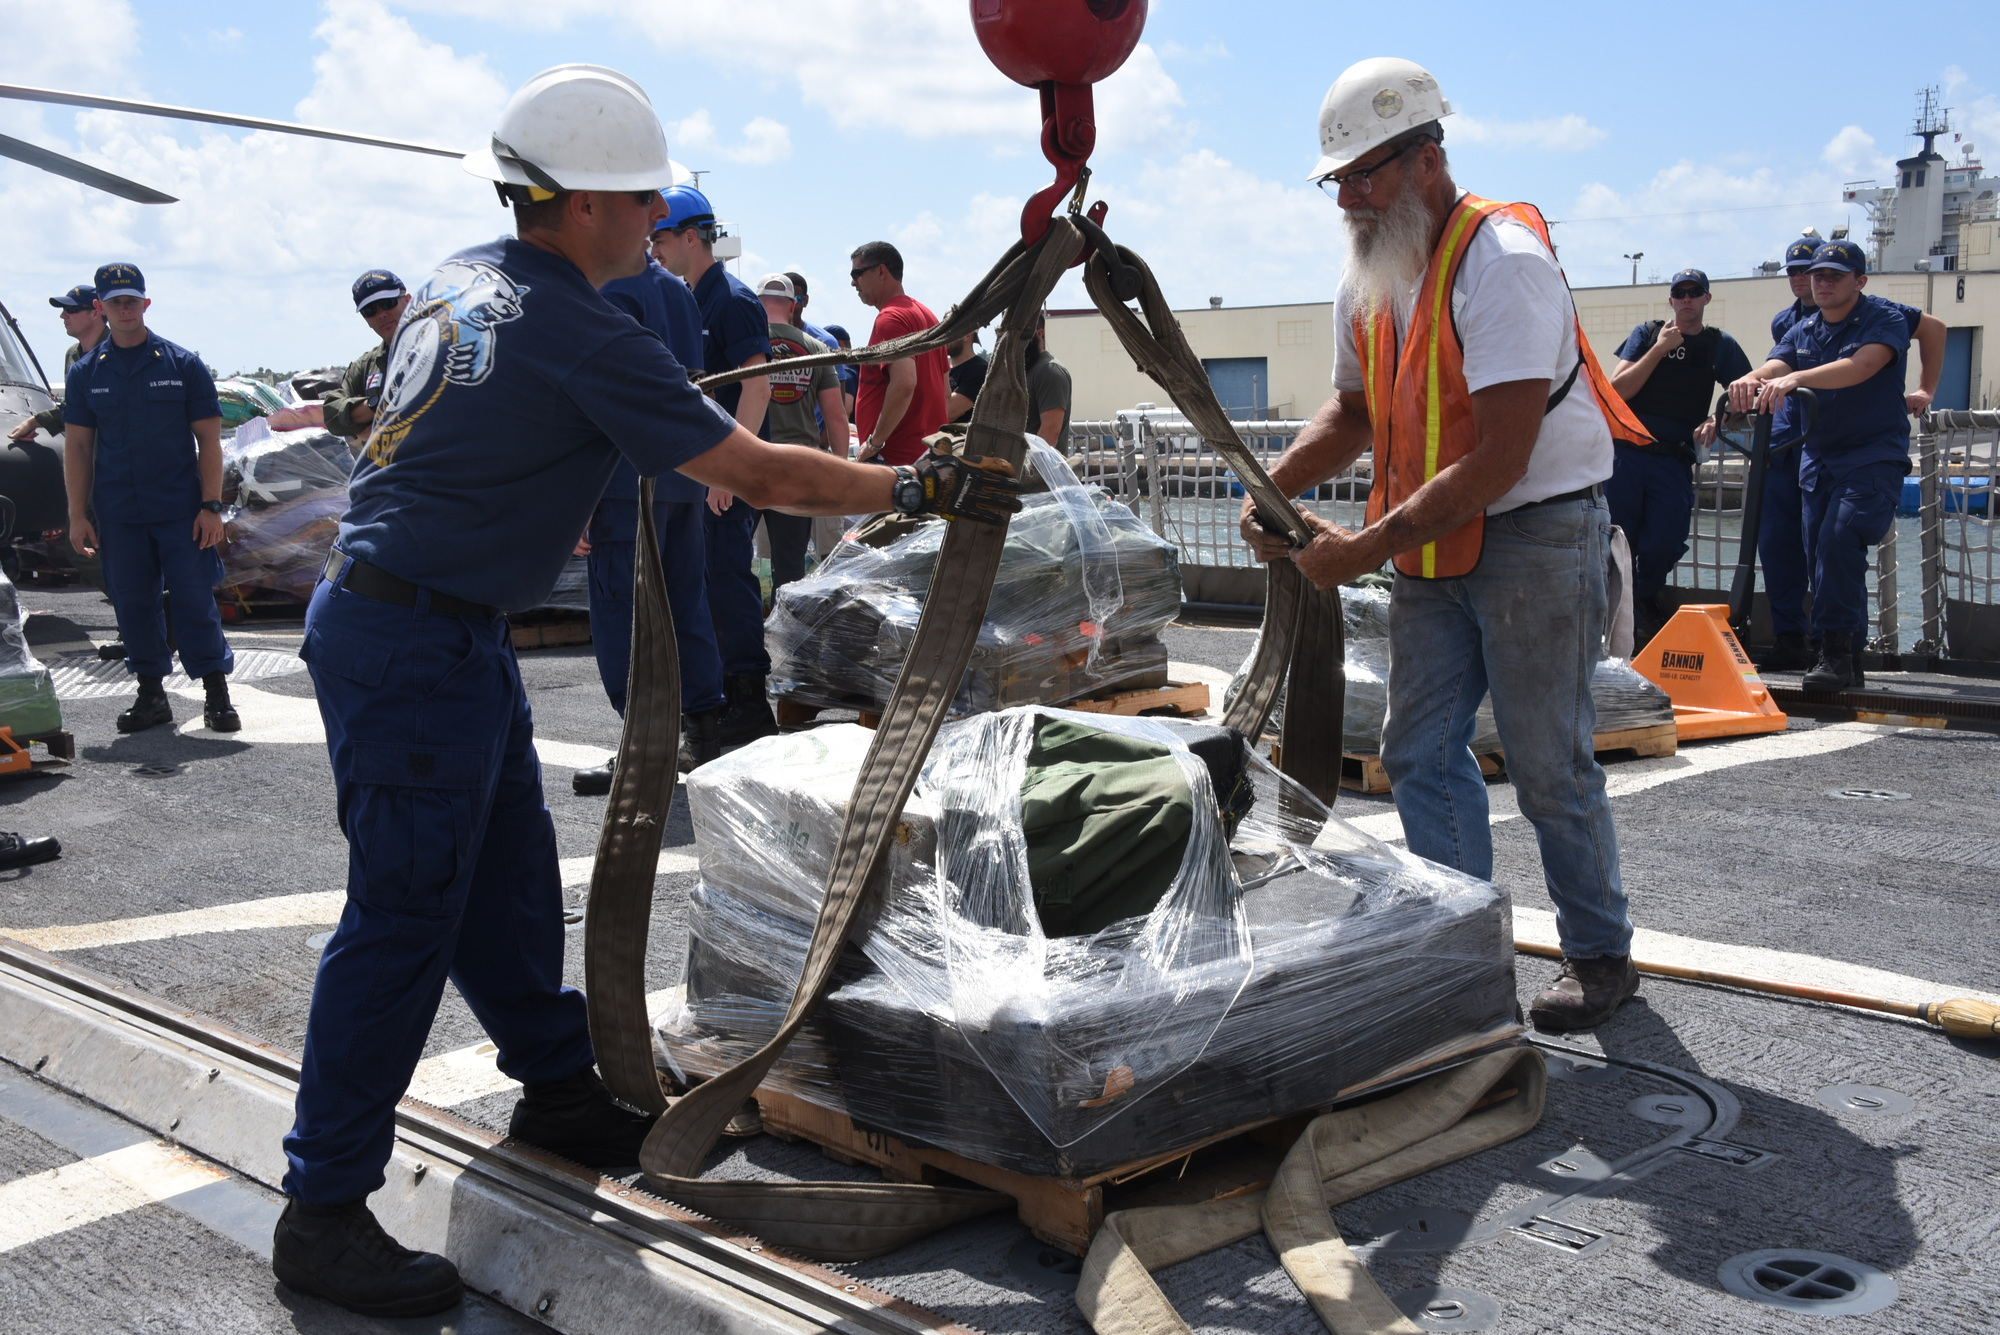 Coast Guard offloaded 14,000 pounds of marijuana and 3,660 pounds of cocaine at Port Everglades